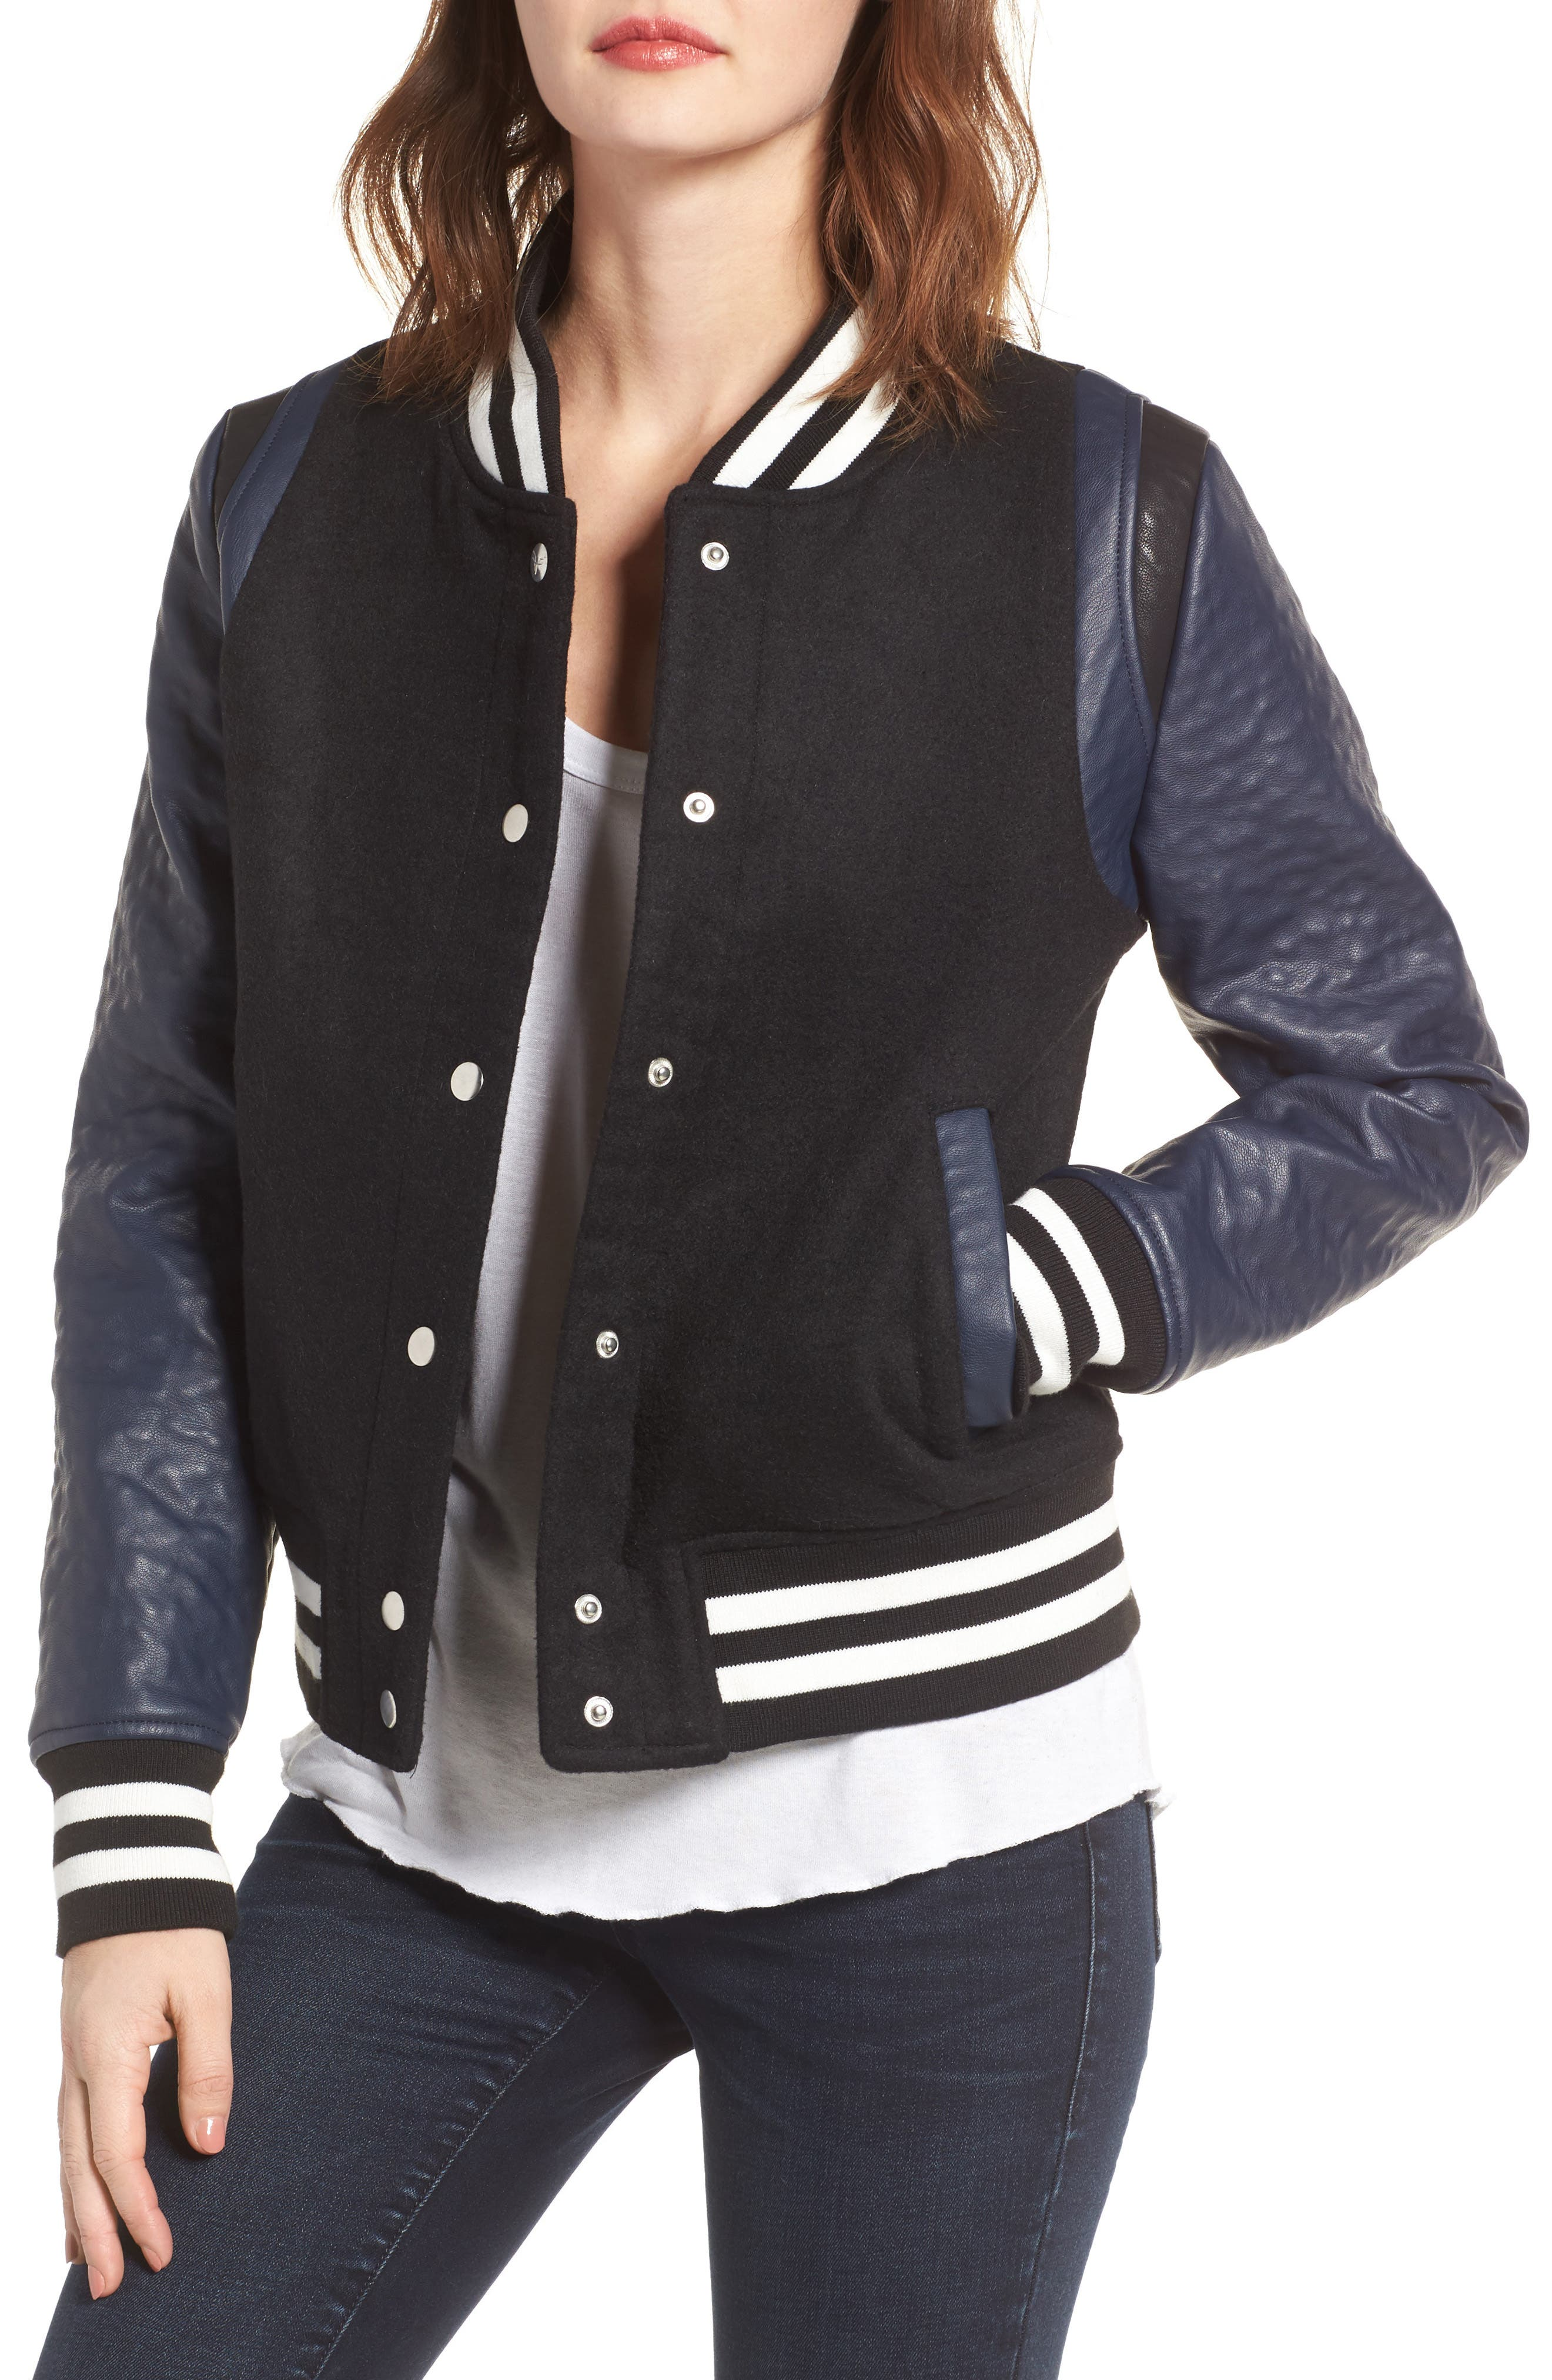 Alternate Image 1 Selected - Vigoss Wool & Faux Leather Baseball Jacket